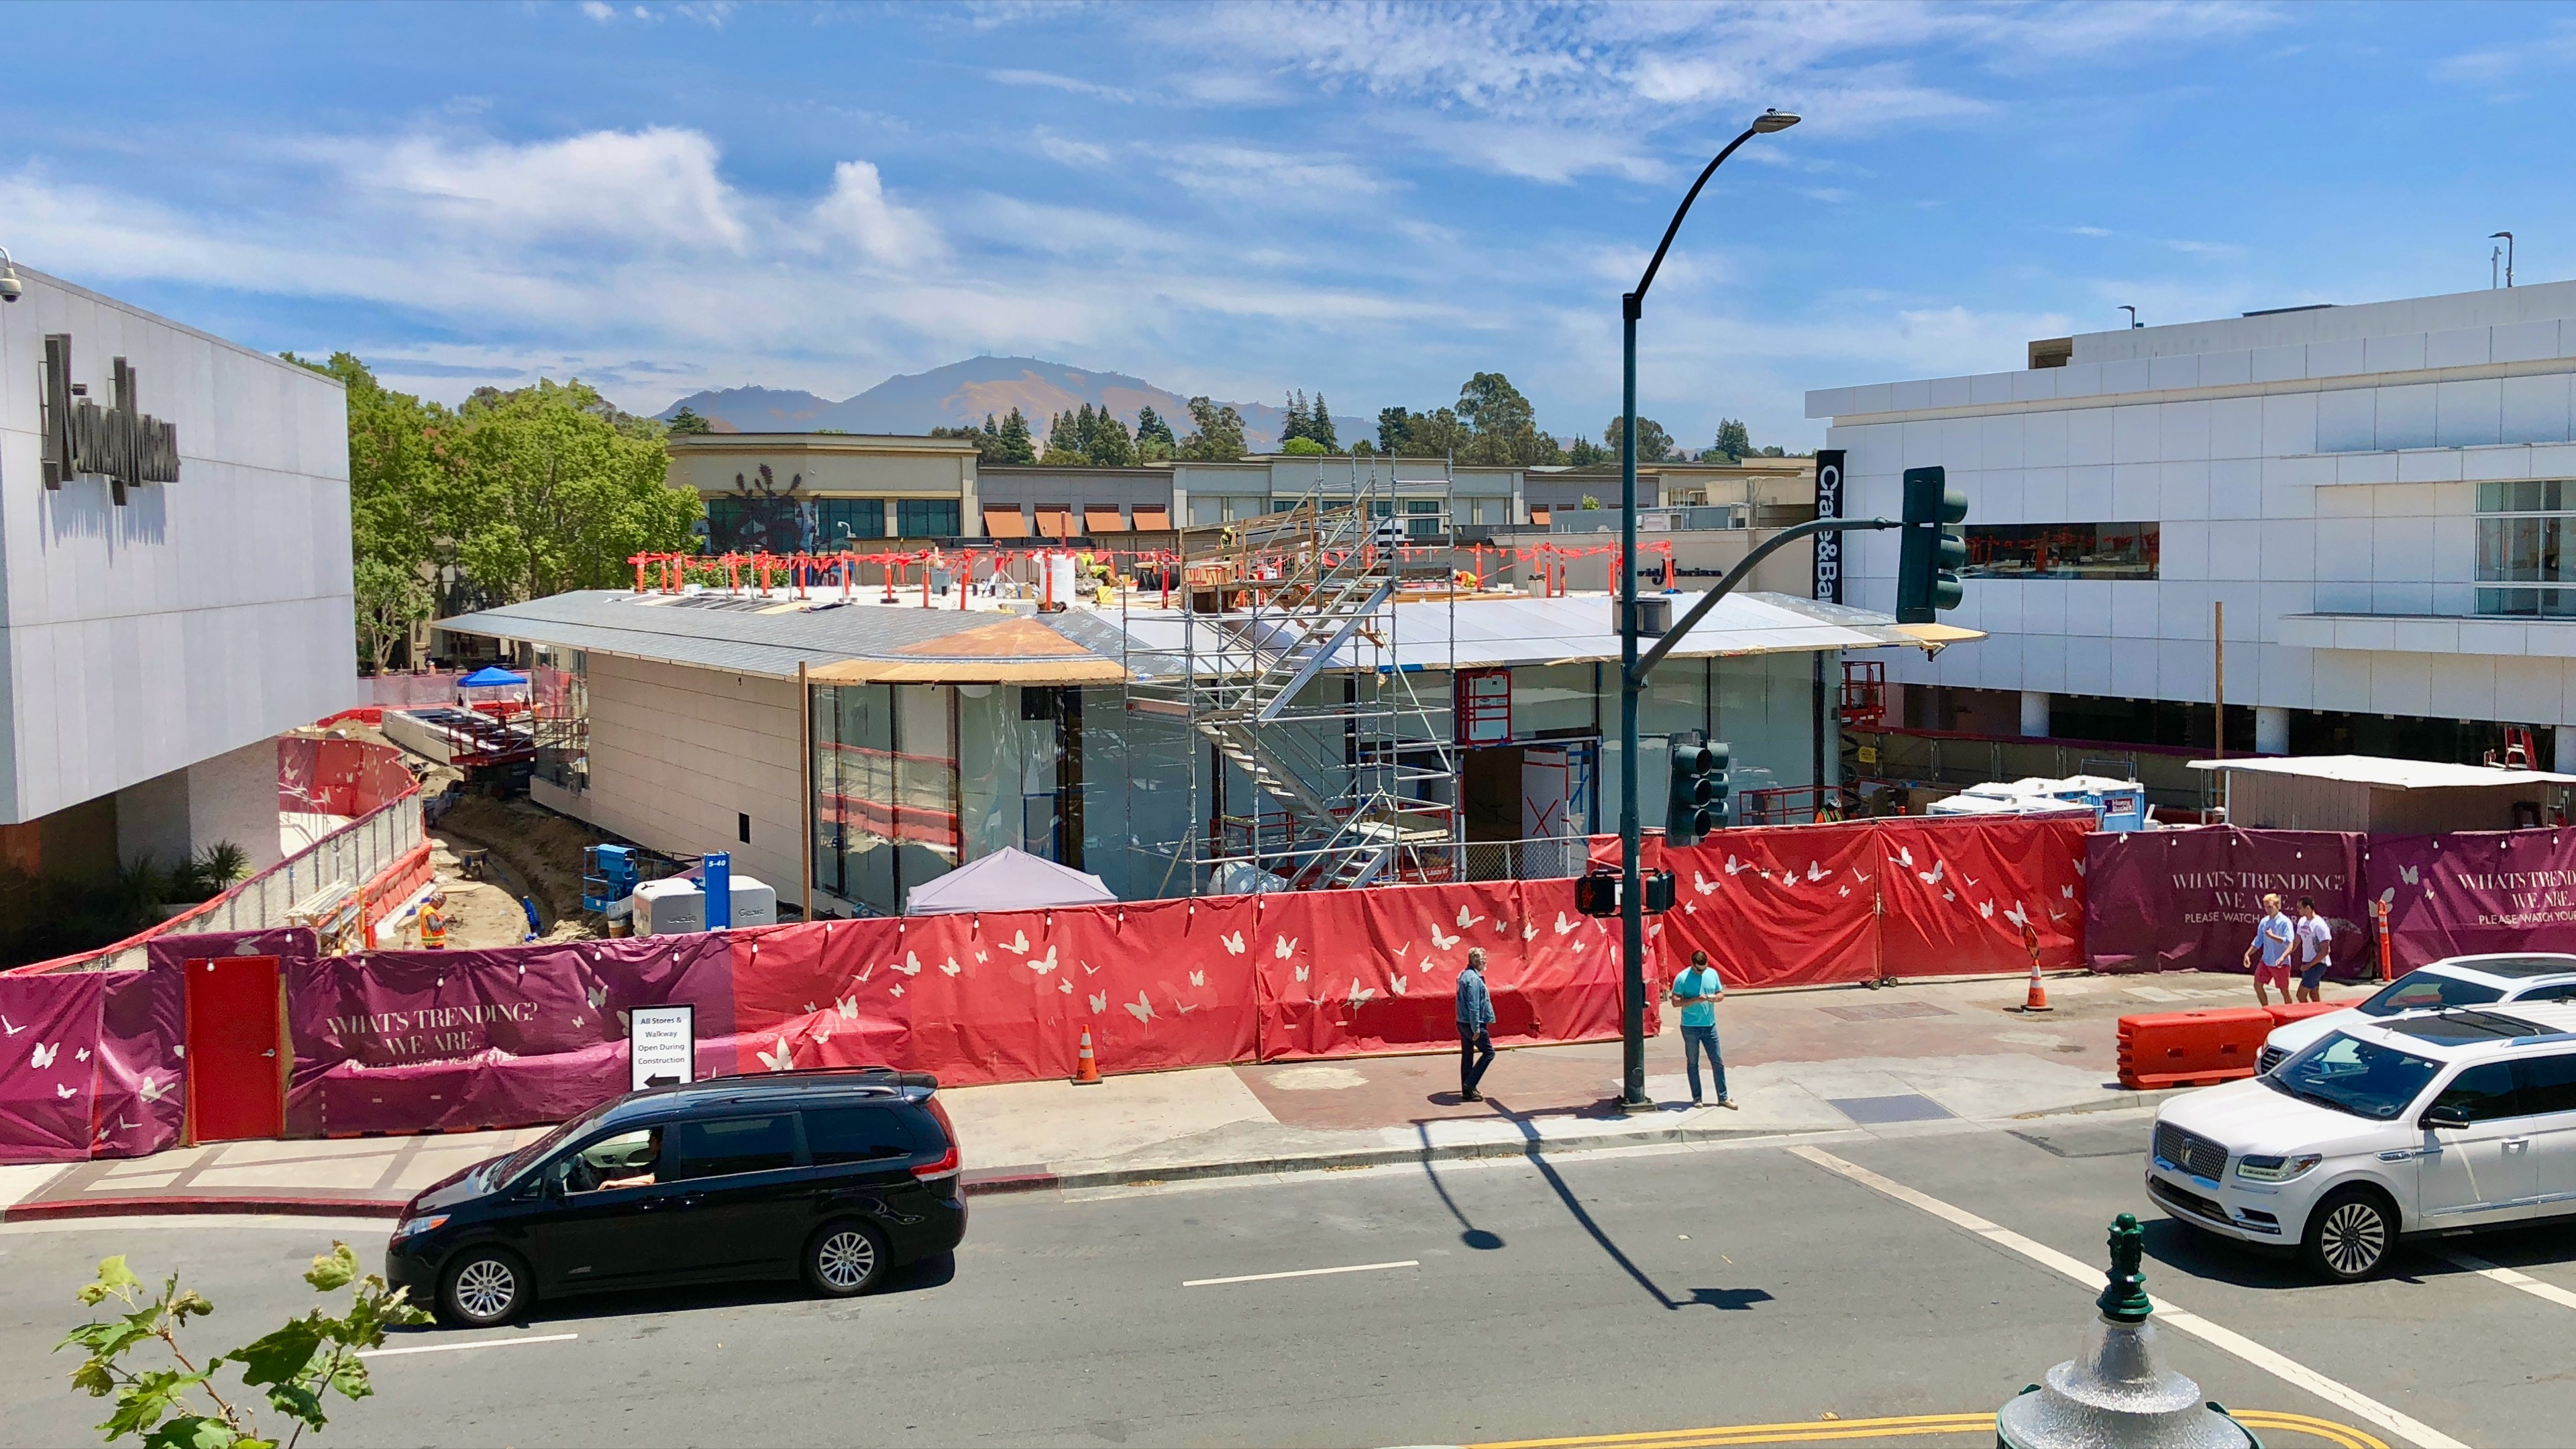 Gallery: New Apple store in Walnut Creek, CA takes shape with curved